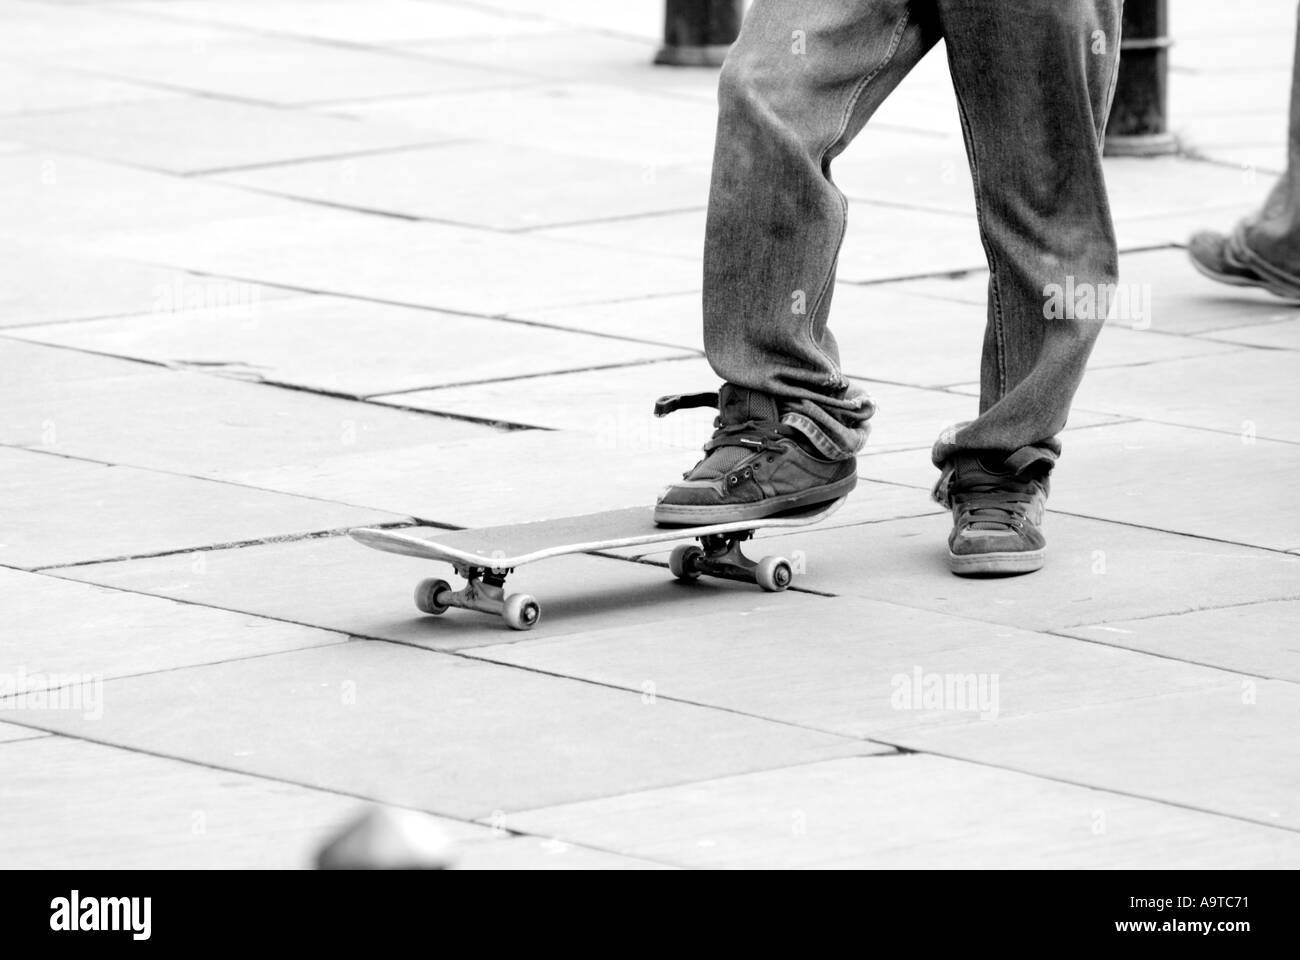 skate boarding skate board grind youth culture fashion jackass injury extreme sport trend teenage male interest - Stock Image